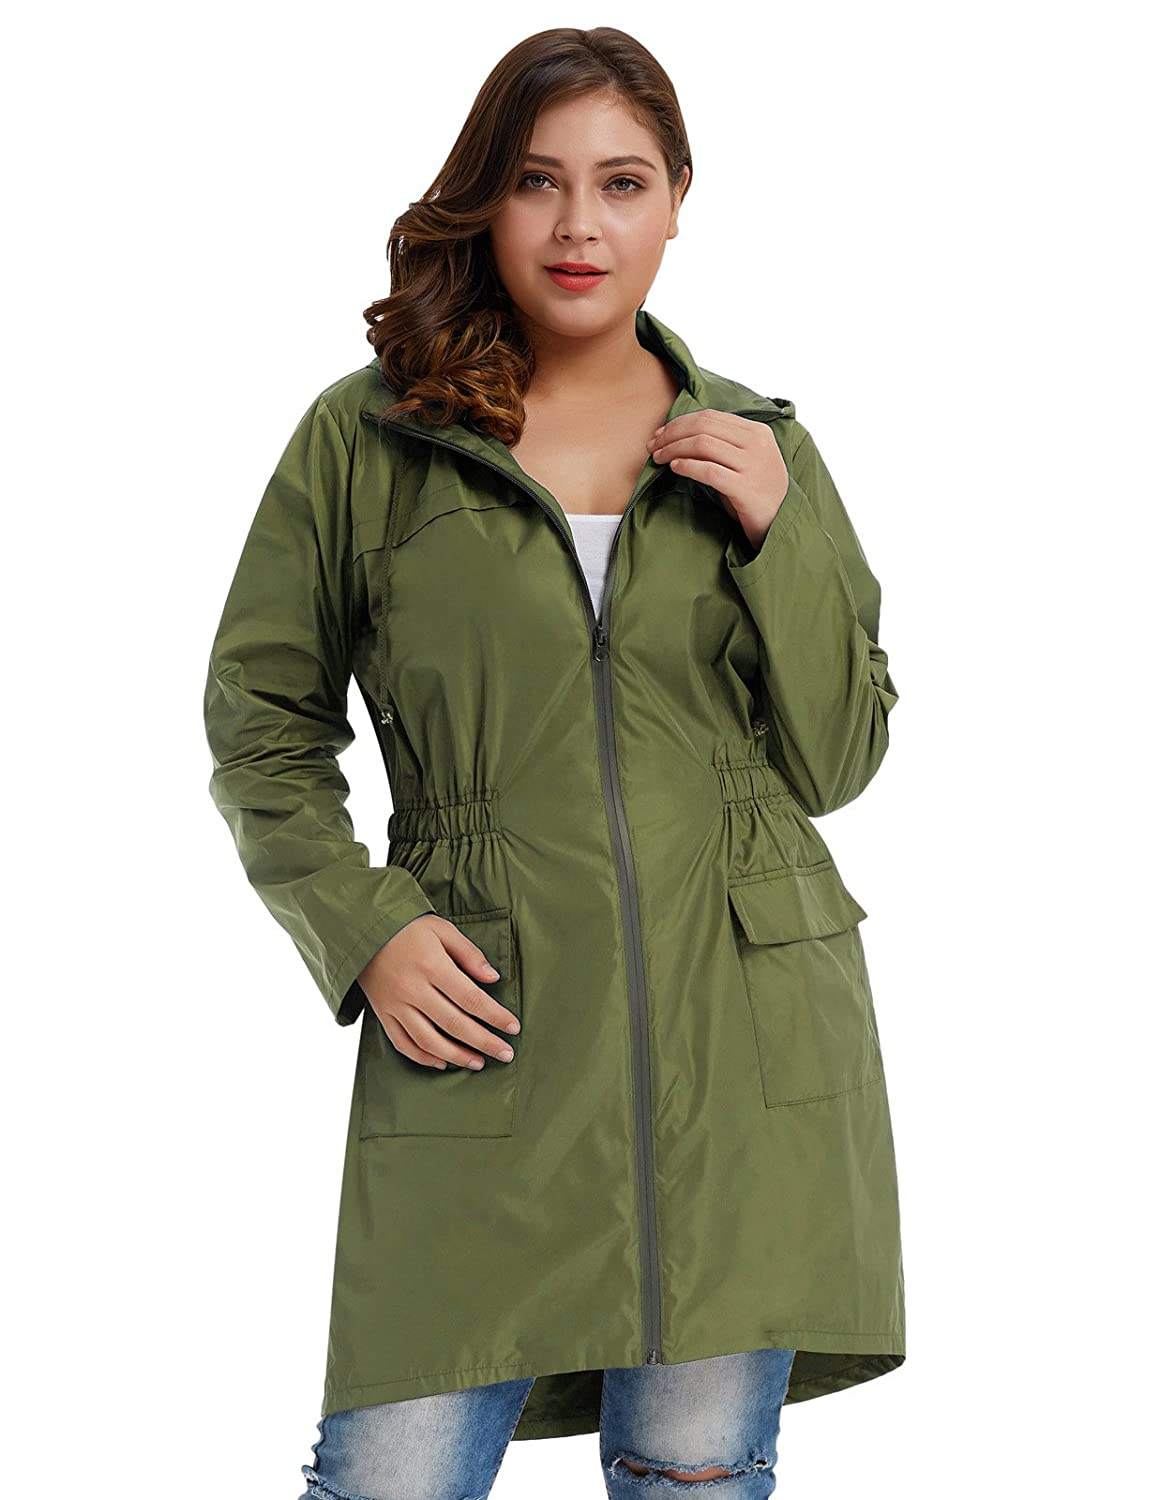 Hanna Nikole Women Plus Size Lightweight Raincoat Travel Hoodie Rain Jacket HN0037